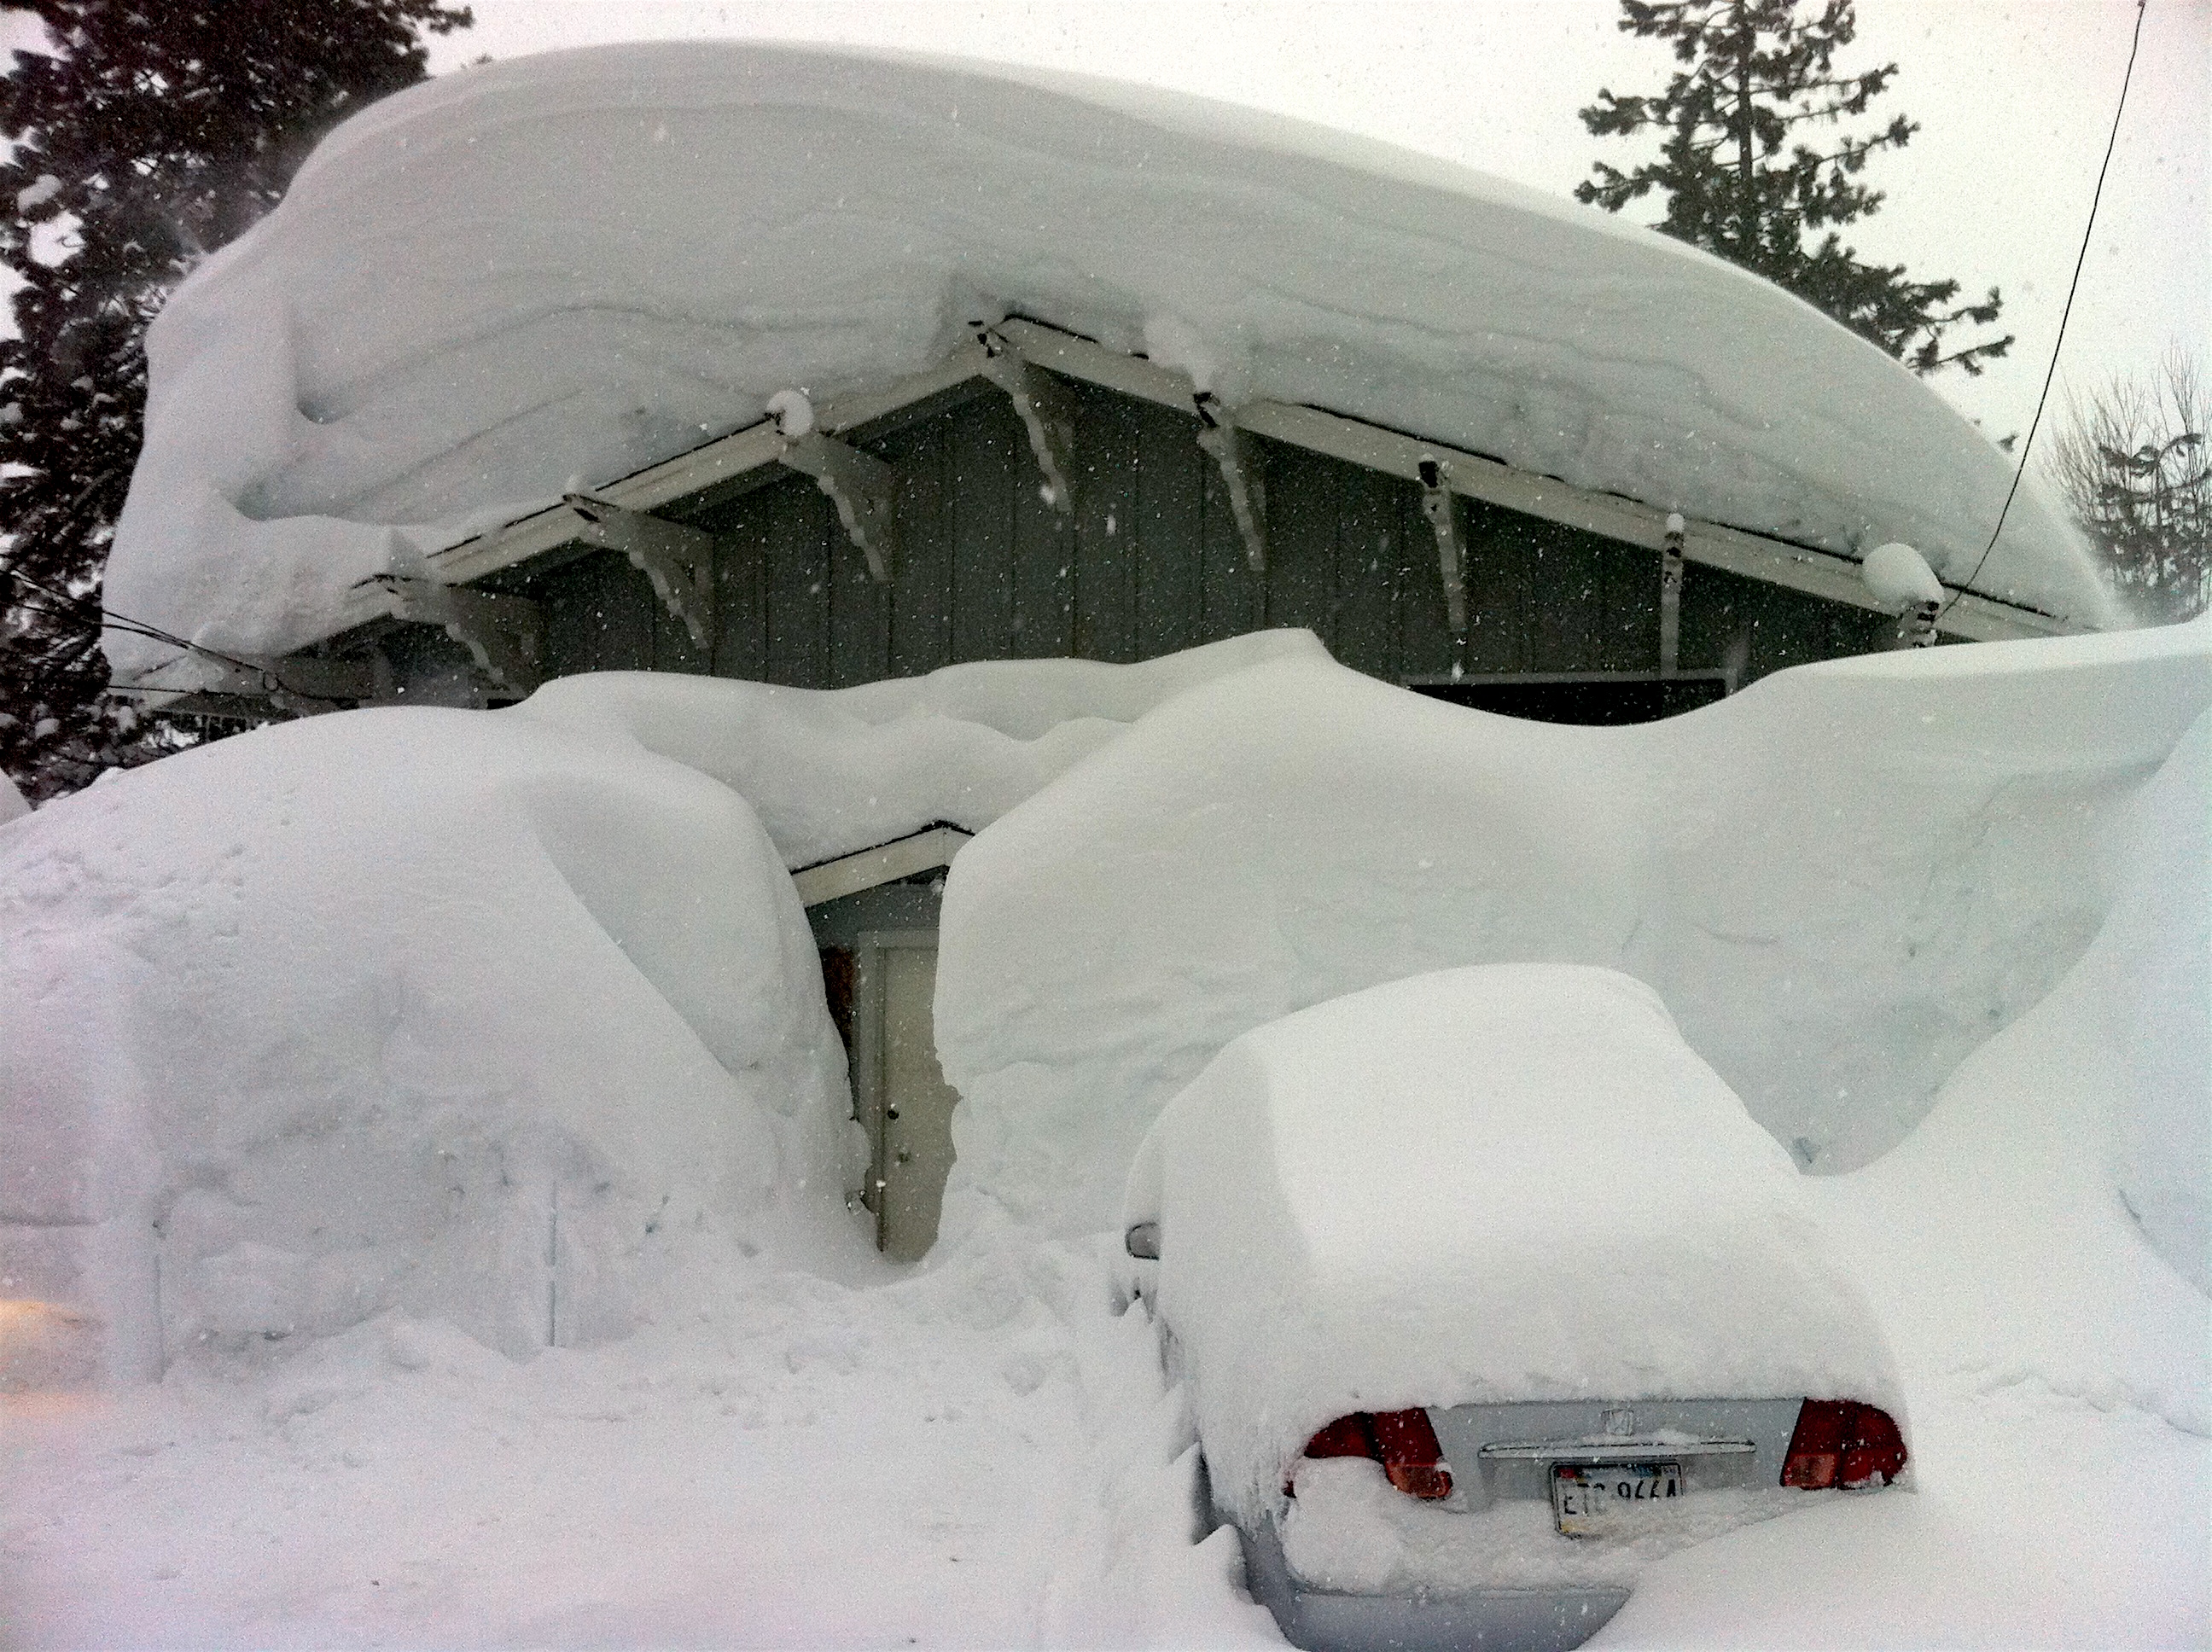 Strong La Nina in 2011 did this in Squaw Valley, CA. photo: miles clark/snowbrains.com